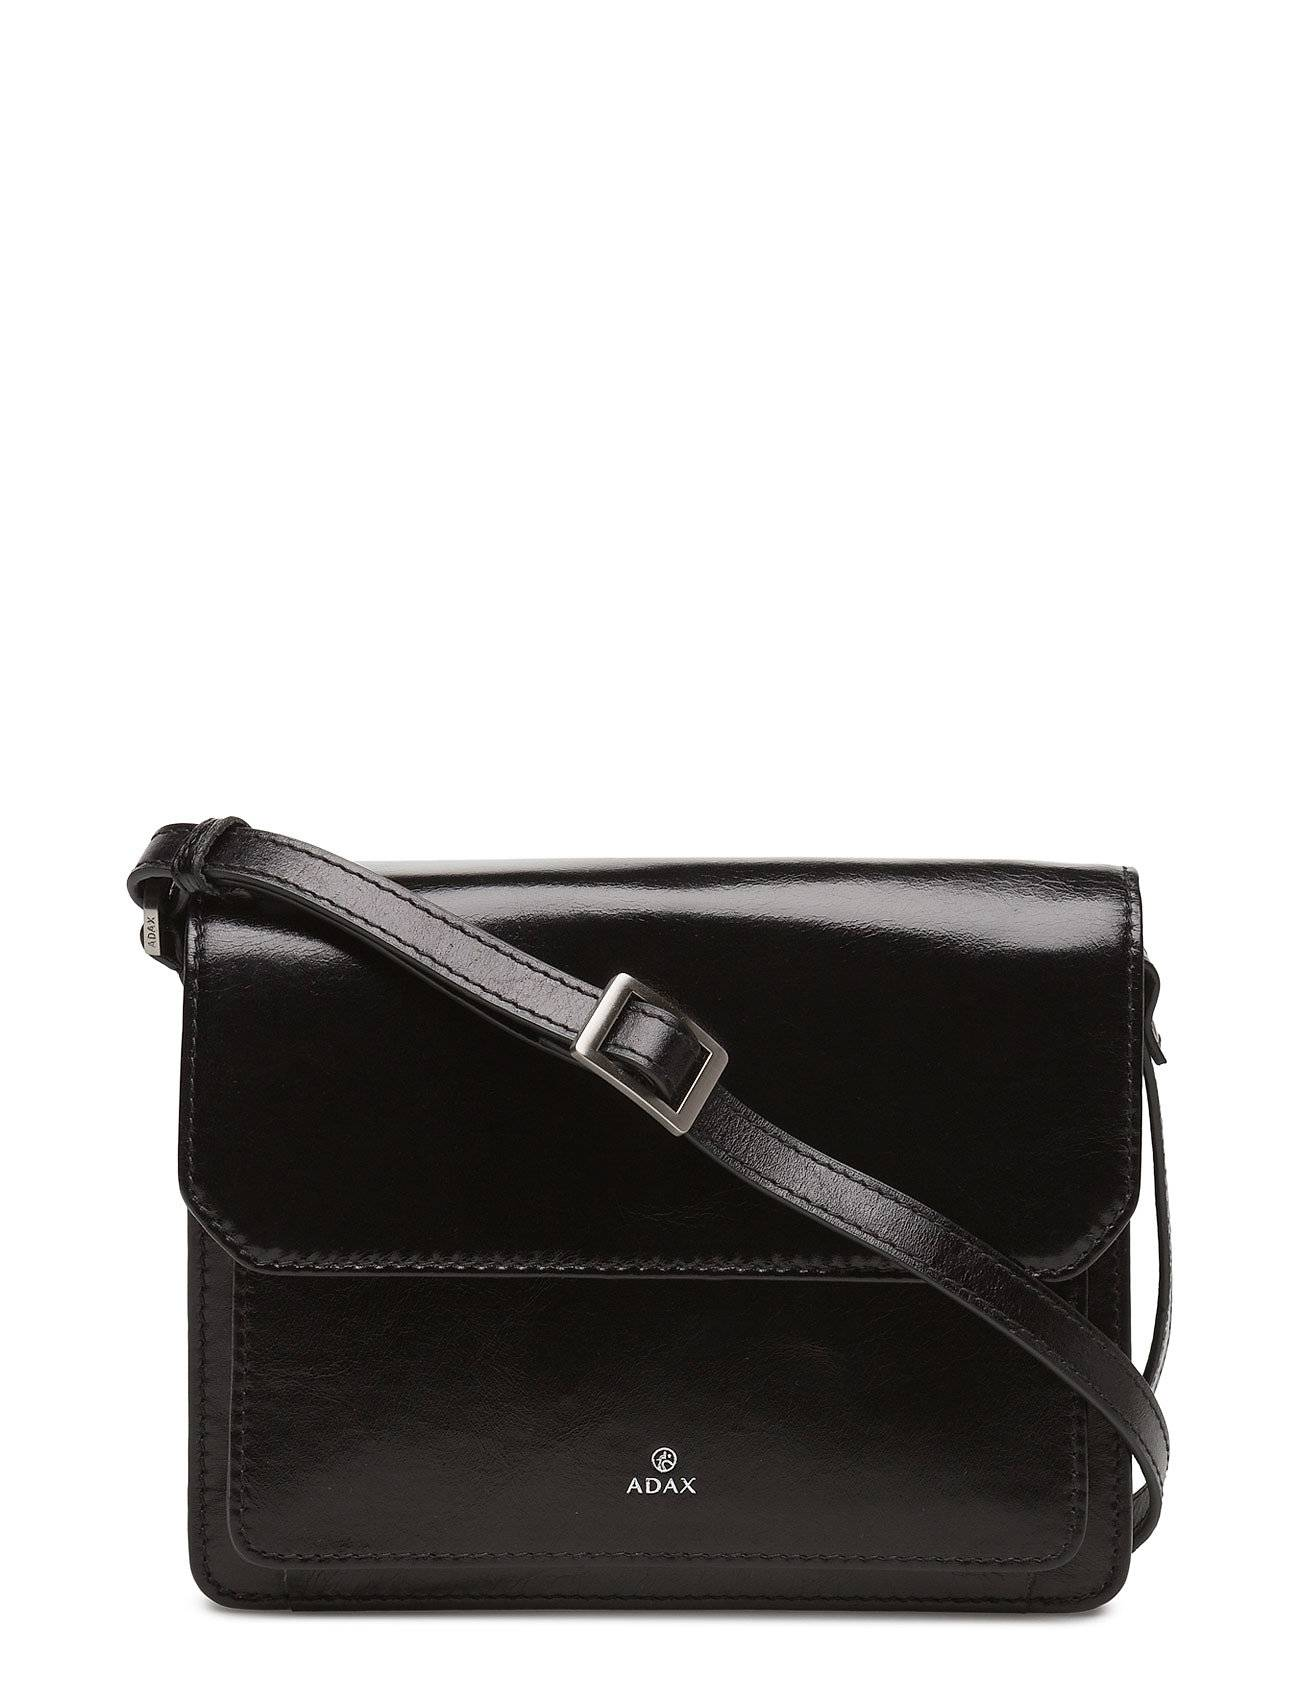 Adax Salerno Shoulder Bag Melicca